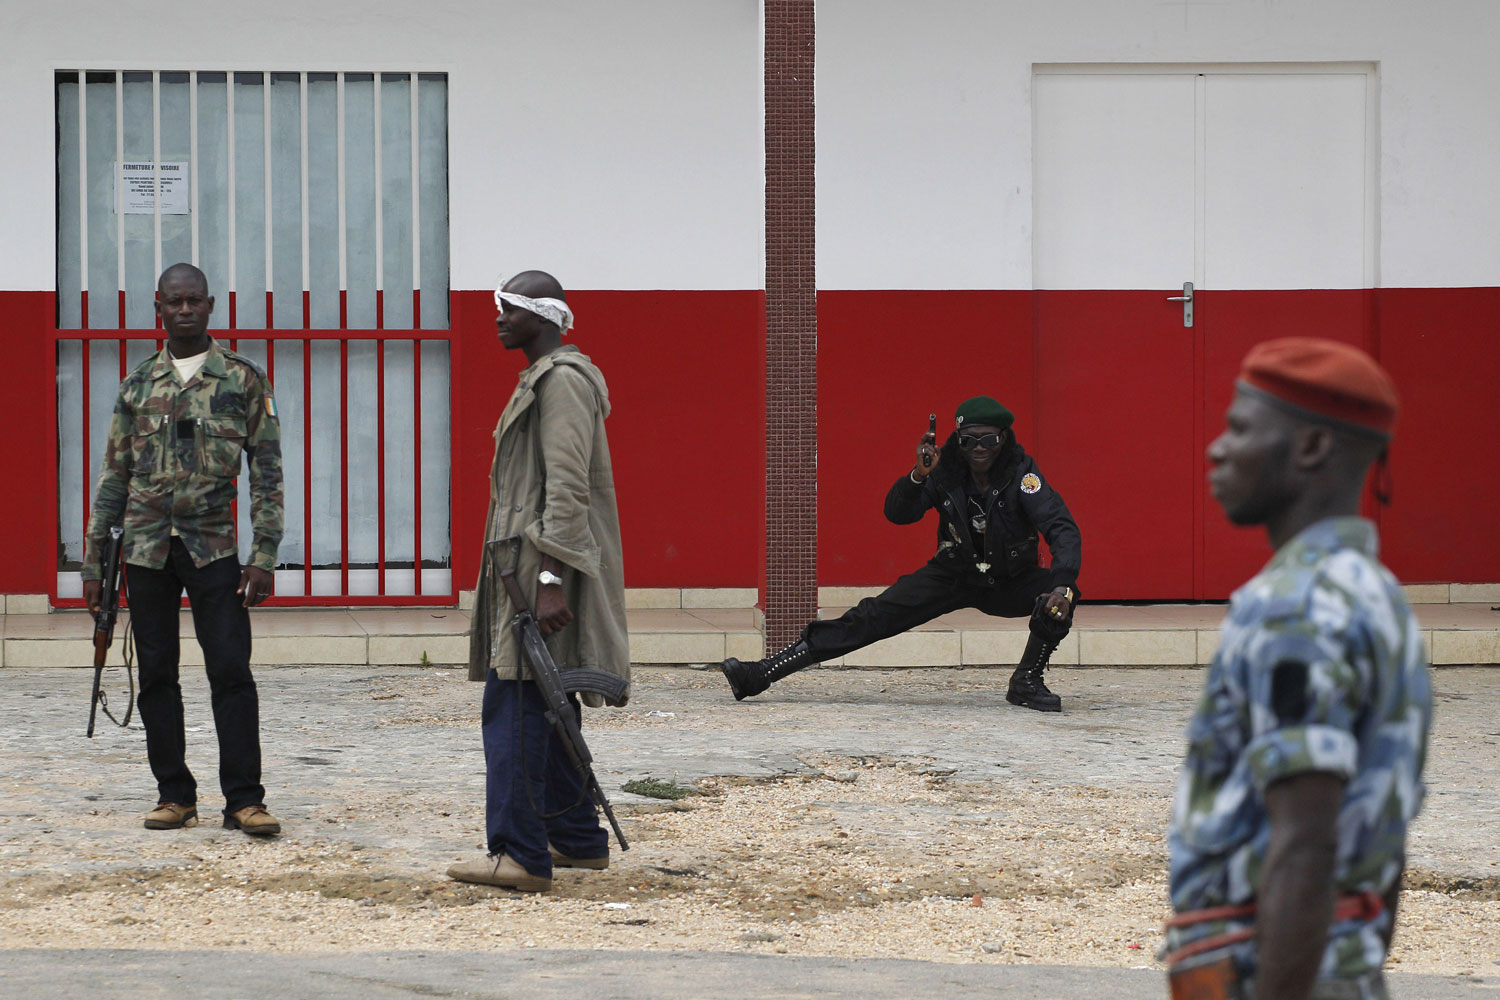 April 13, 2011. A republican forces soldier, second right, practices Tae Kwon Do moves while holding a pistol as he stands guard with other soldiers during a patrol in the Cocody neighborhood of Abidjan, Ivory Coast. The country's president is trying to establish order in the days after Ivory Coast's strongman was arrested, assuring the public that looting and gunfire will cease and life will soon return to normal.